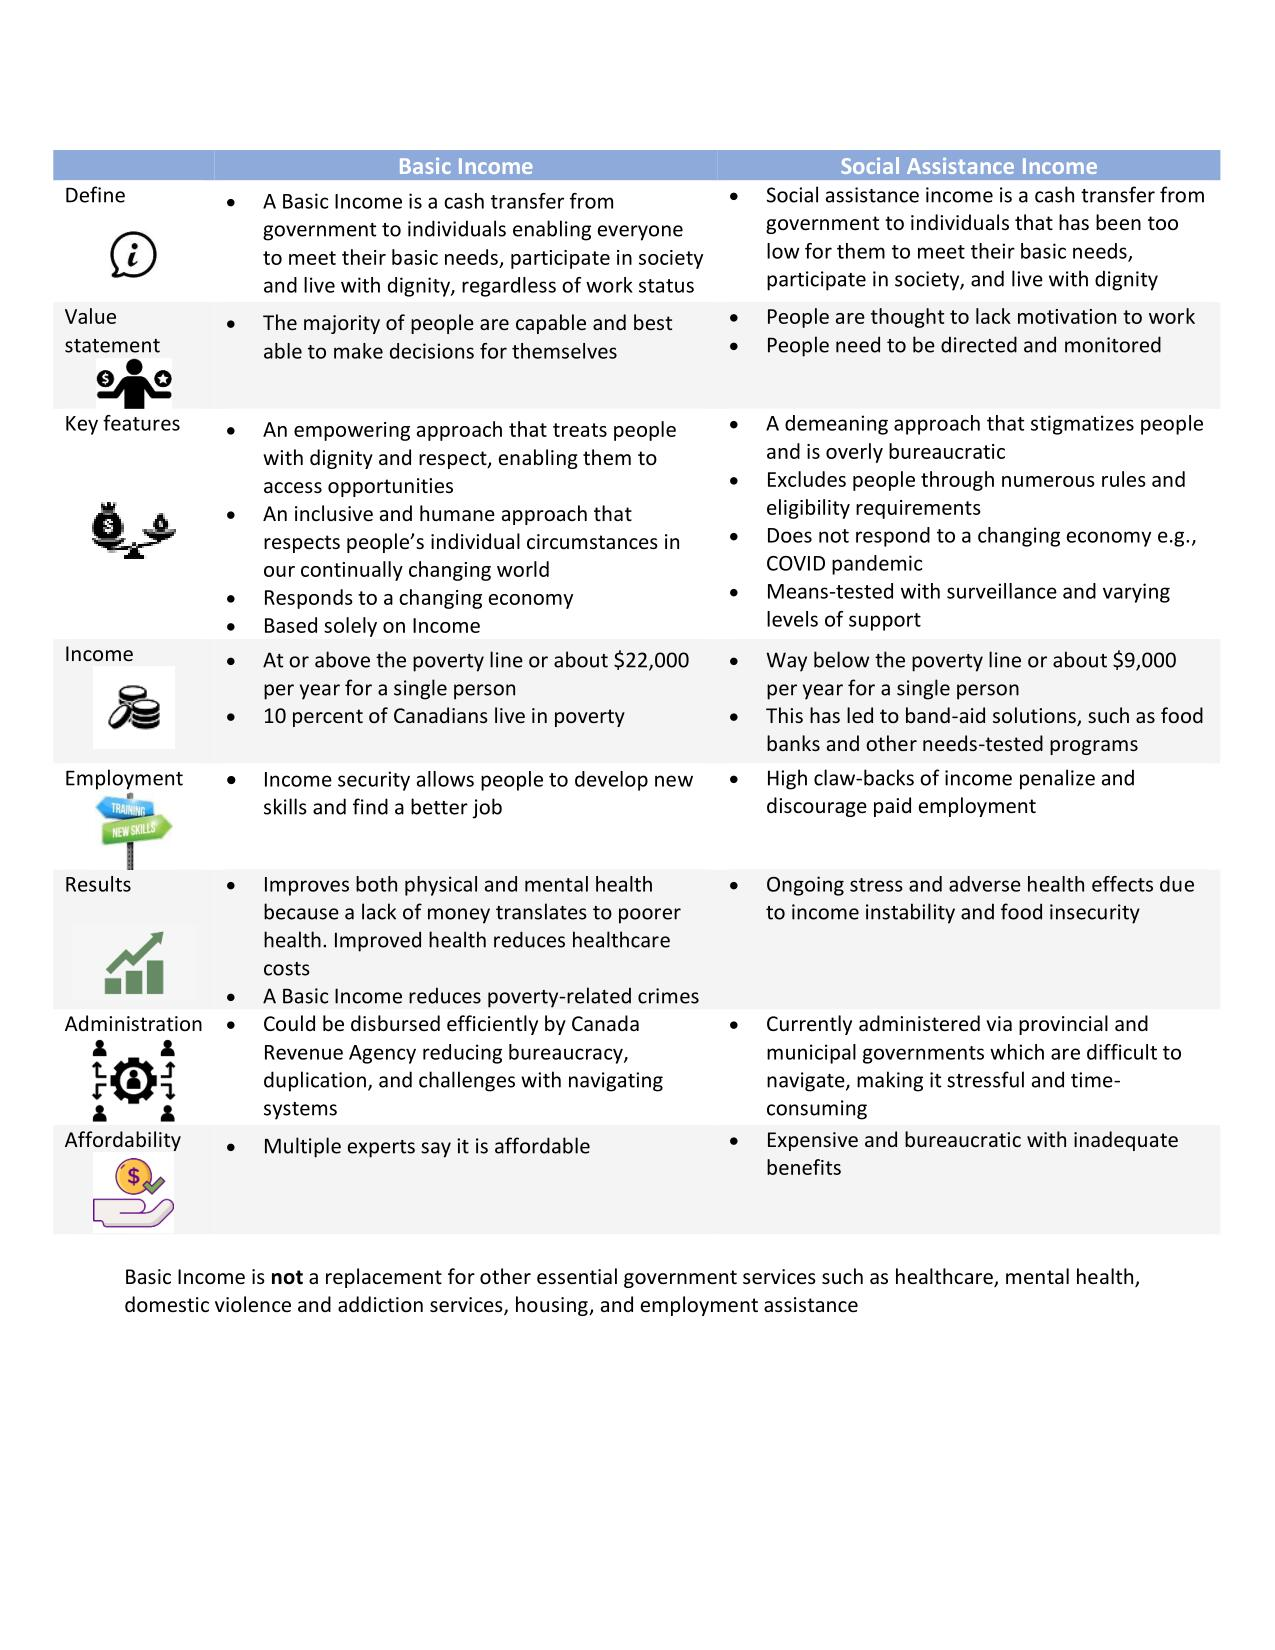 Basic Income Infographic